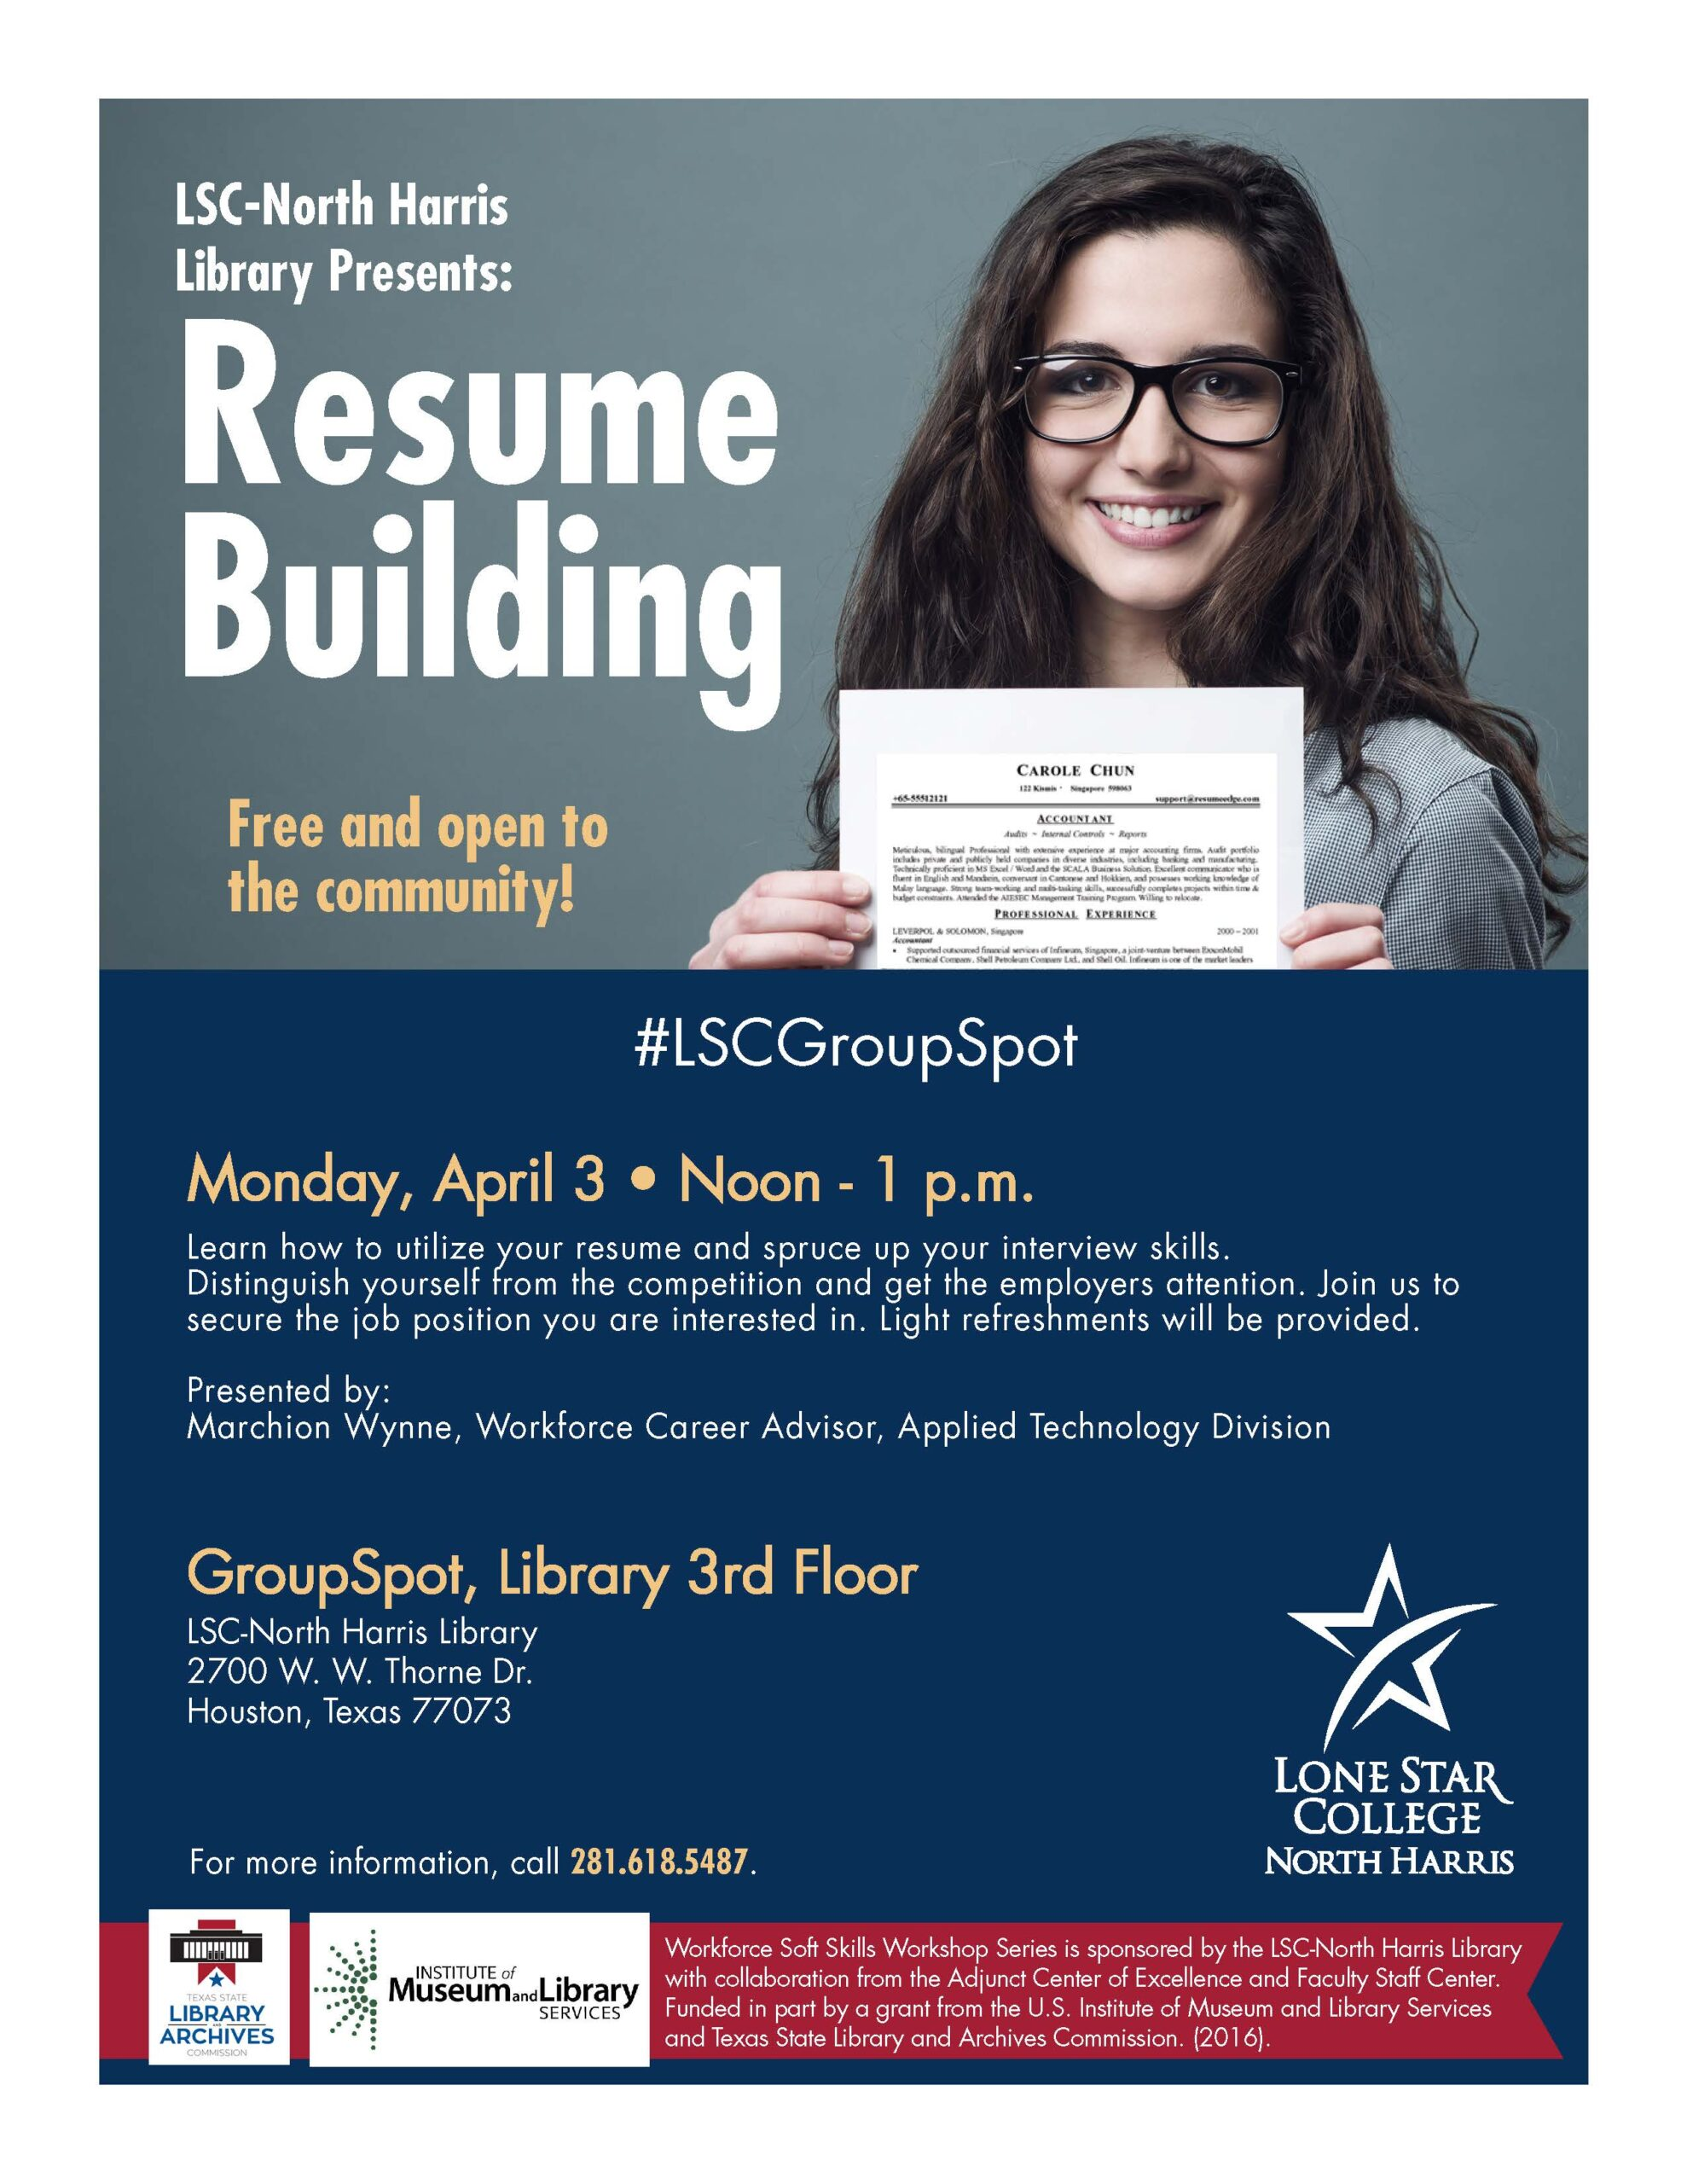 lsc north resume building free workshop customer service administrative assistant workday Resume Resume Building Workshop